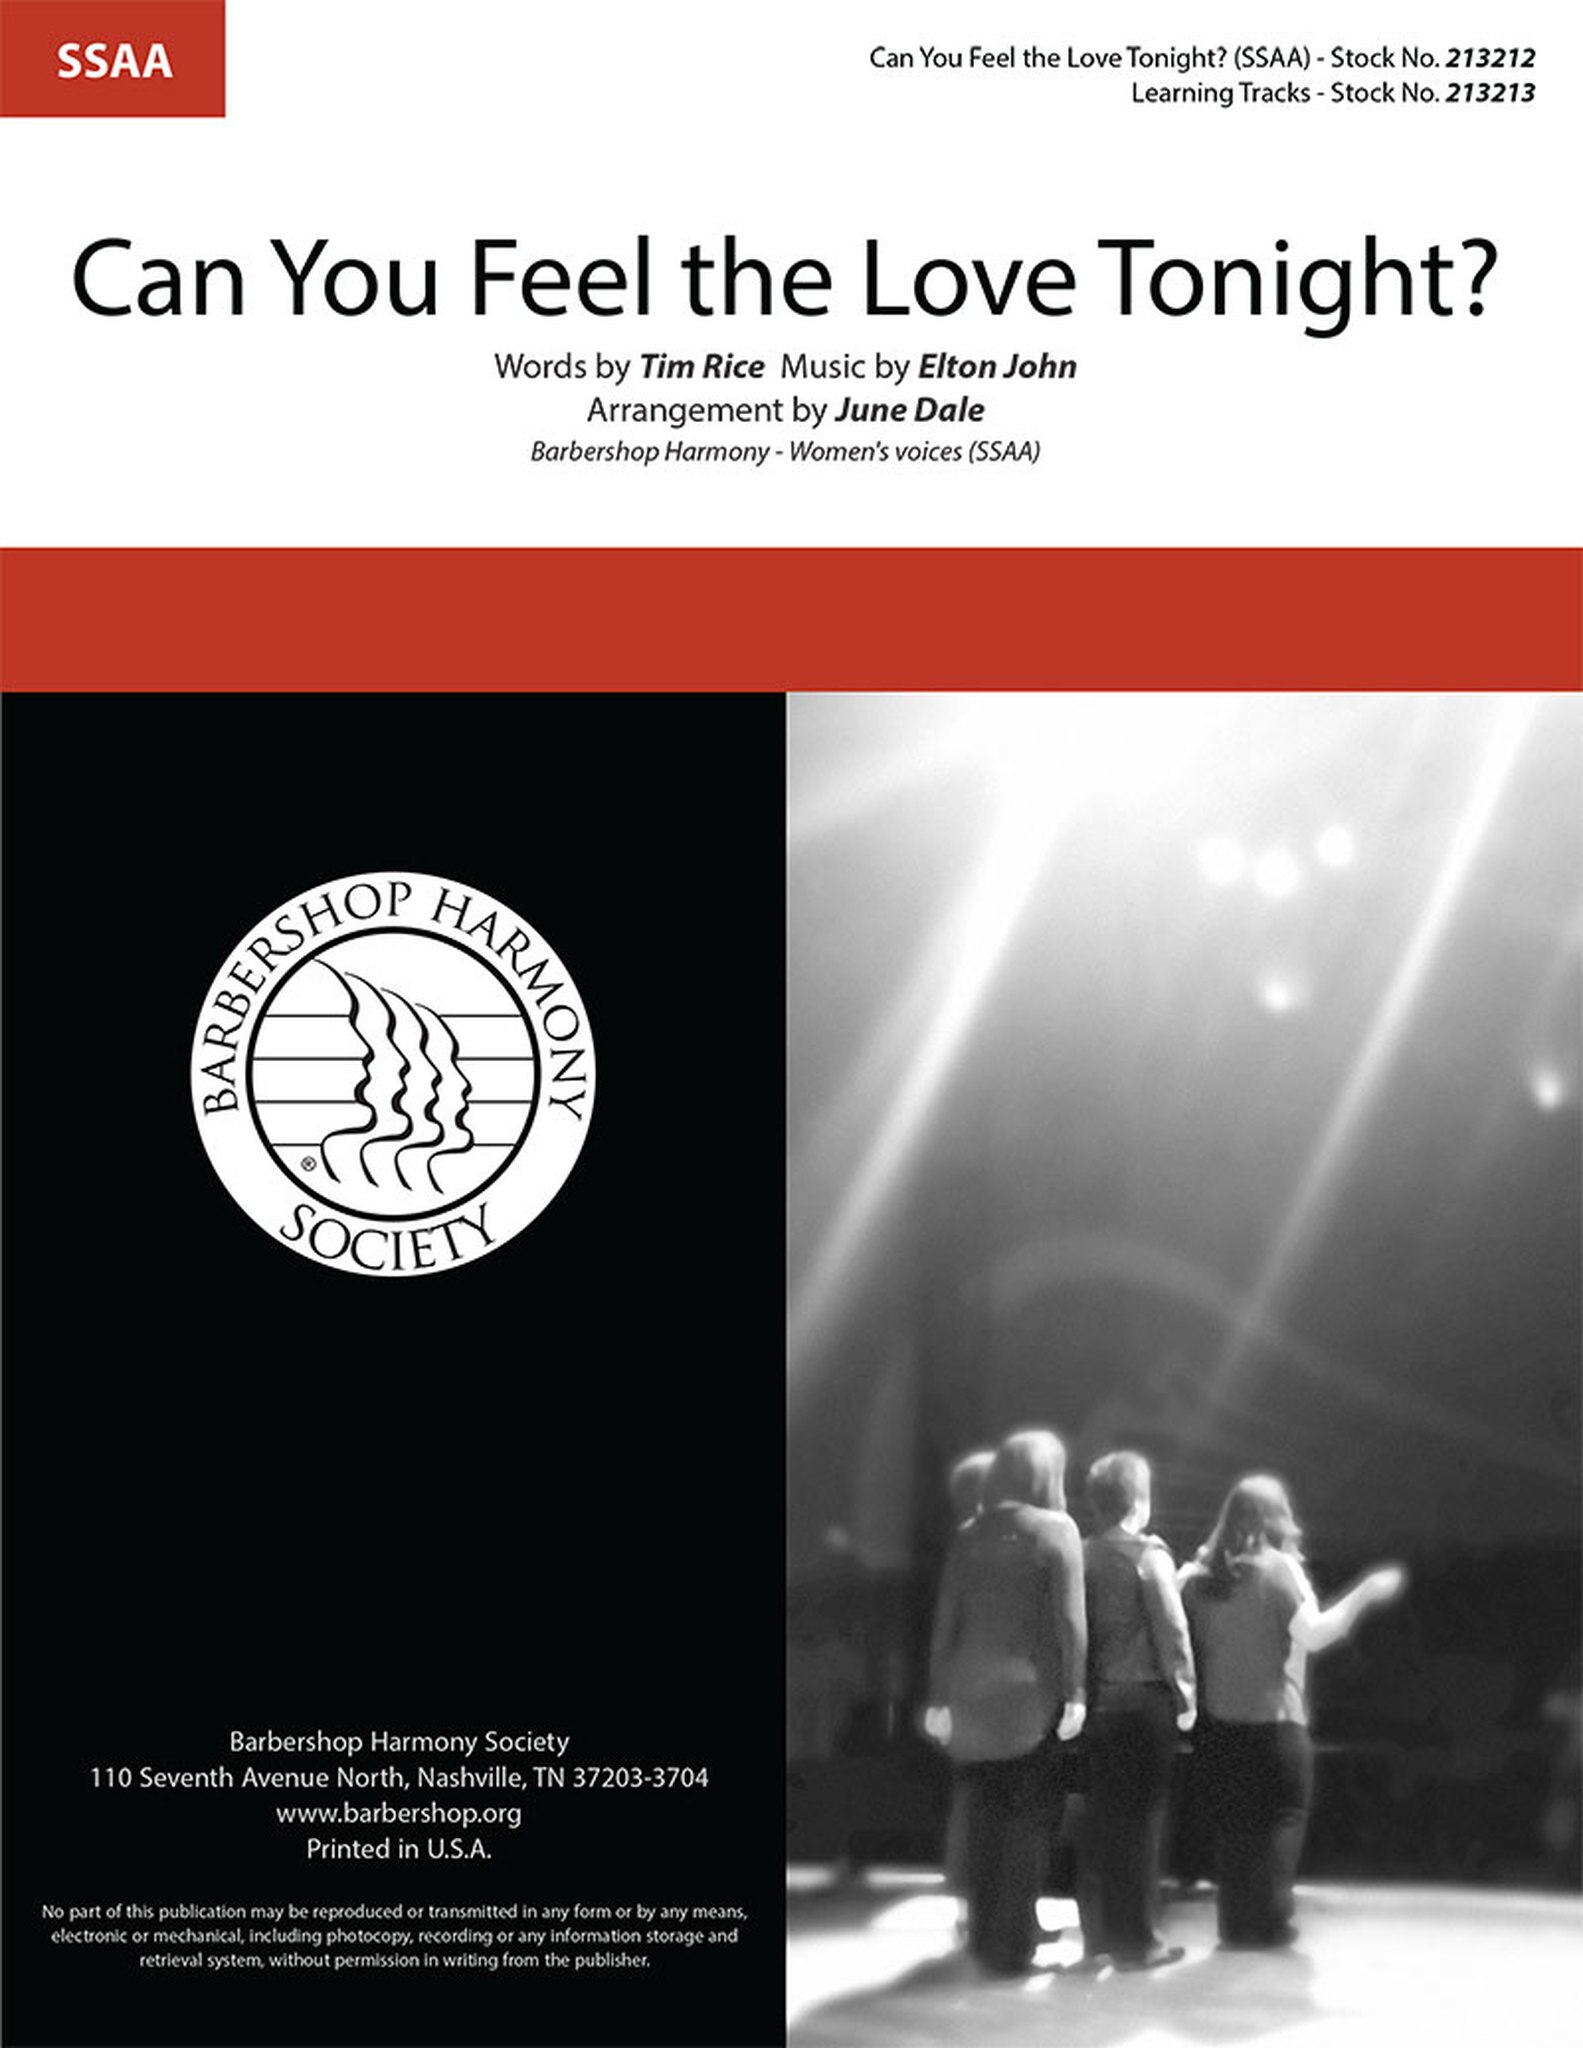 Can You Feel the Love Tonight? : SSAA : June Dale : Elton John : The Lion King : Songbook & CD : 213212